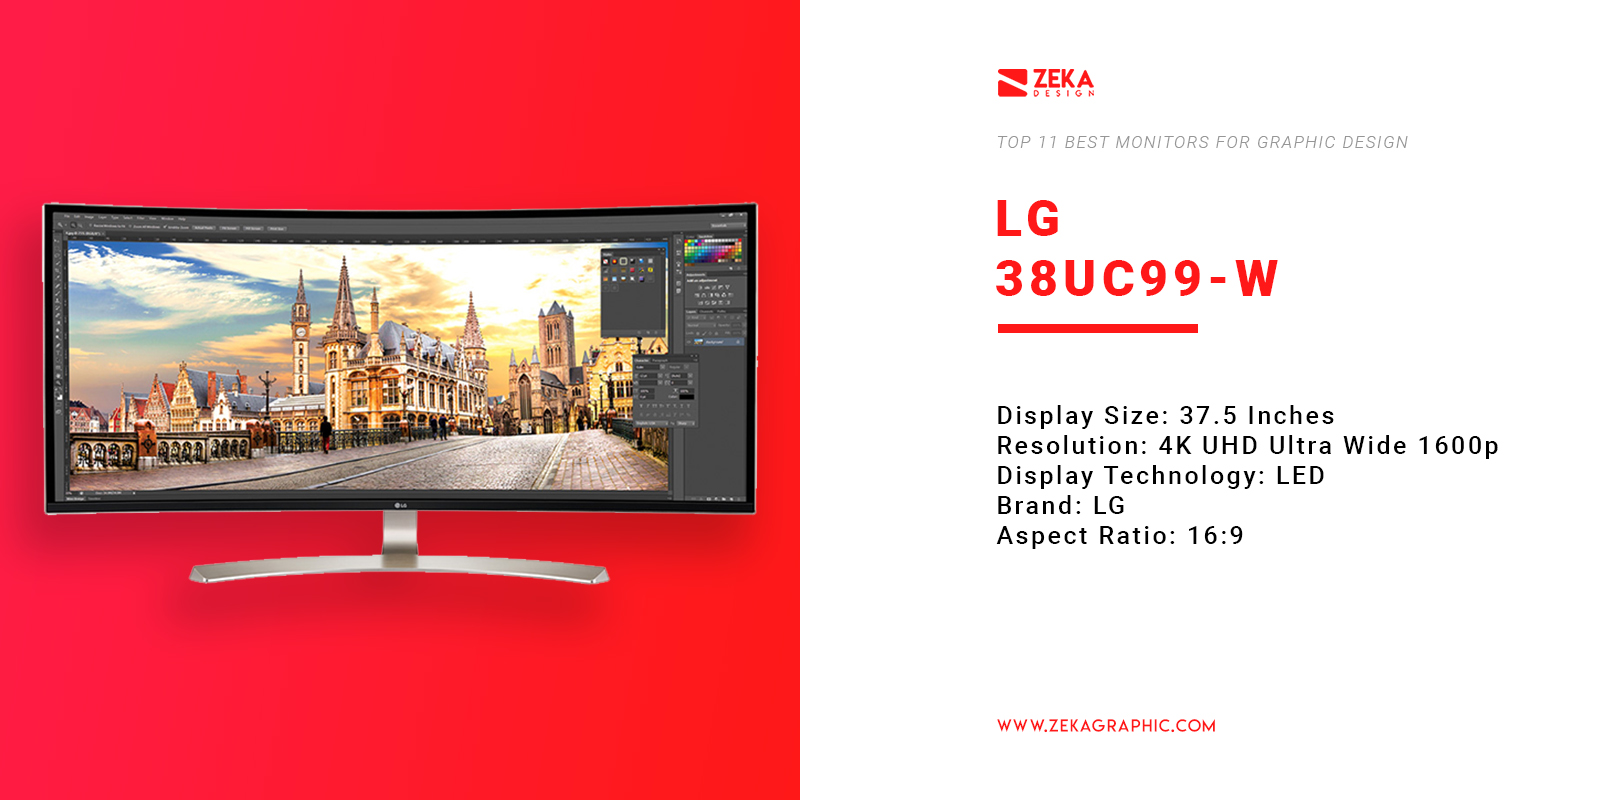 LG 38UC99-W 4K Monitor for Graphic Design